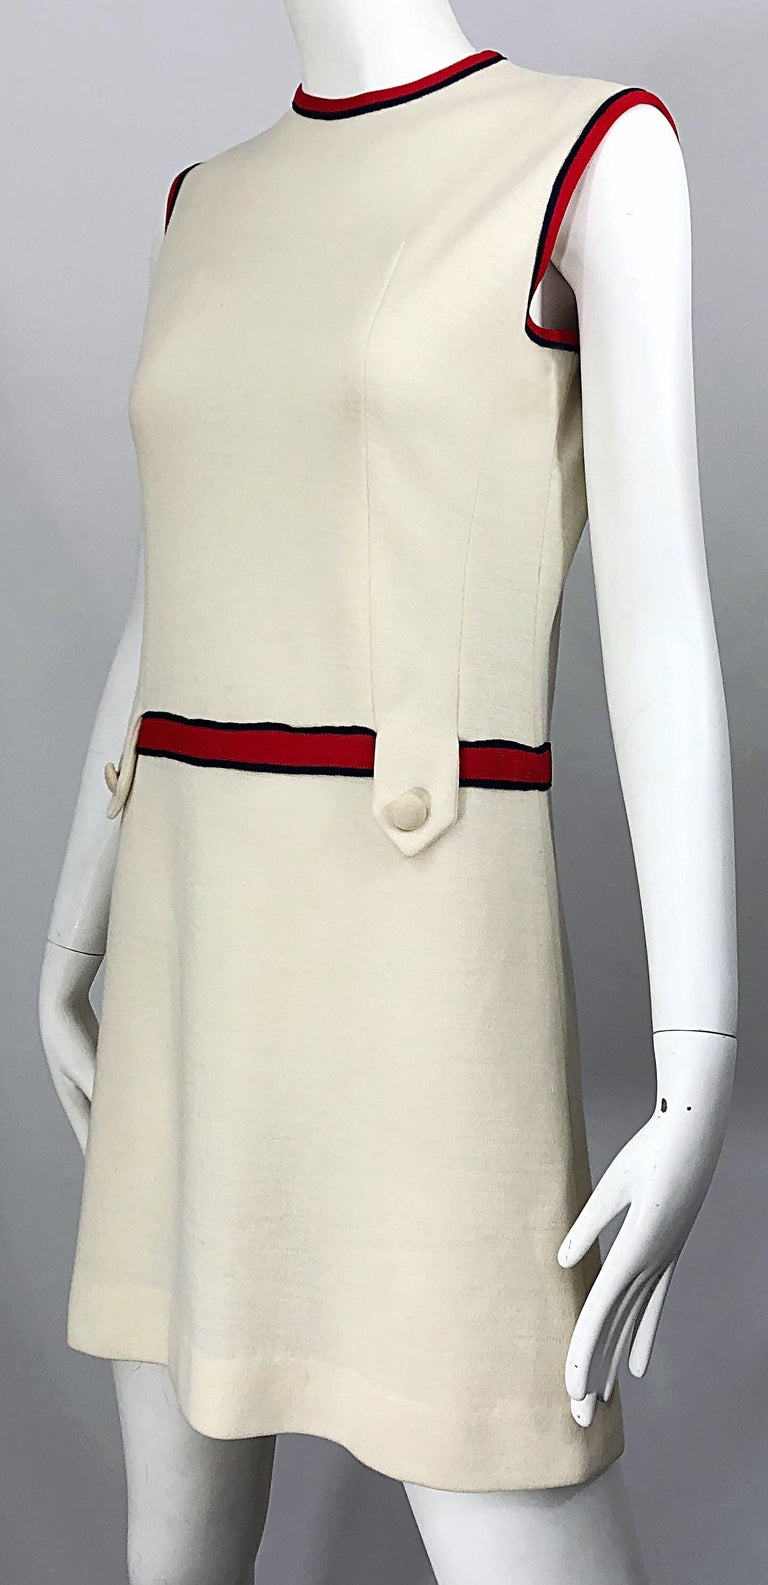 Chic 1960s Ivory + Navy Blue + Red Knit Vintage 60s Nautical Mod Shift Dress For Sale 6